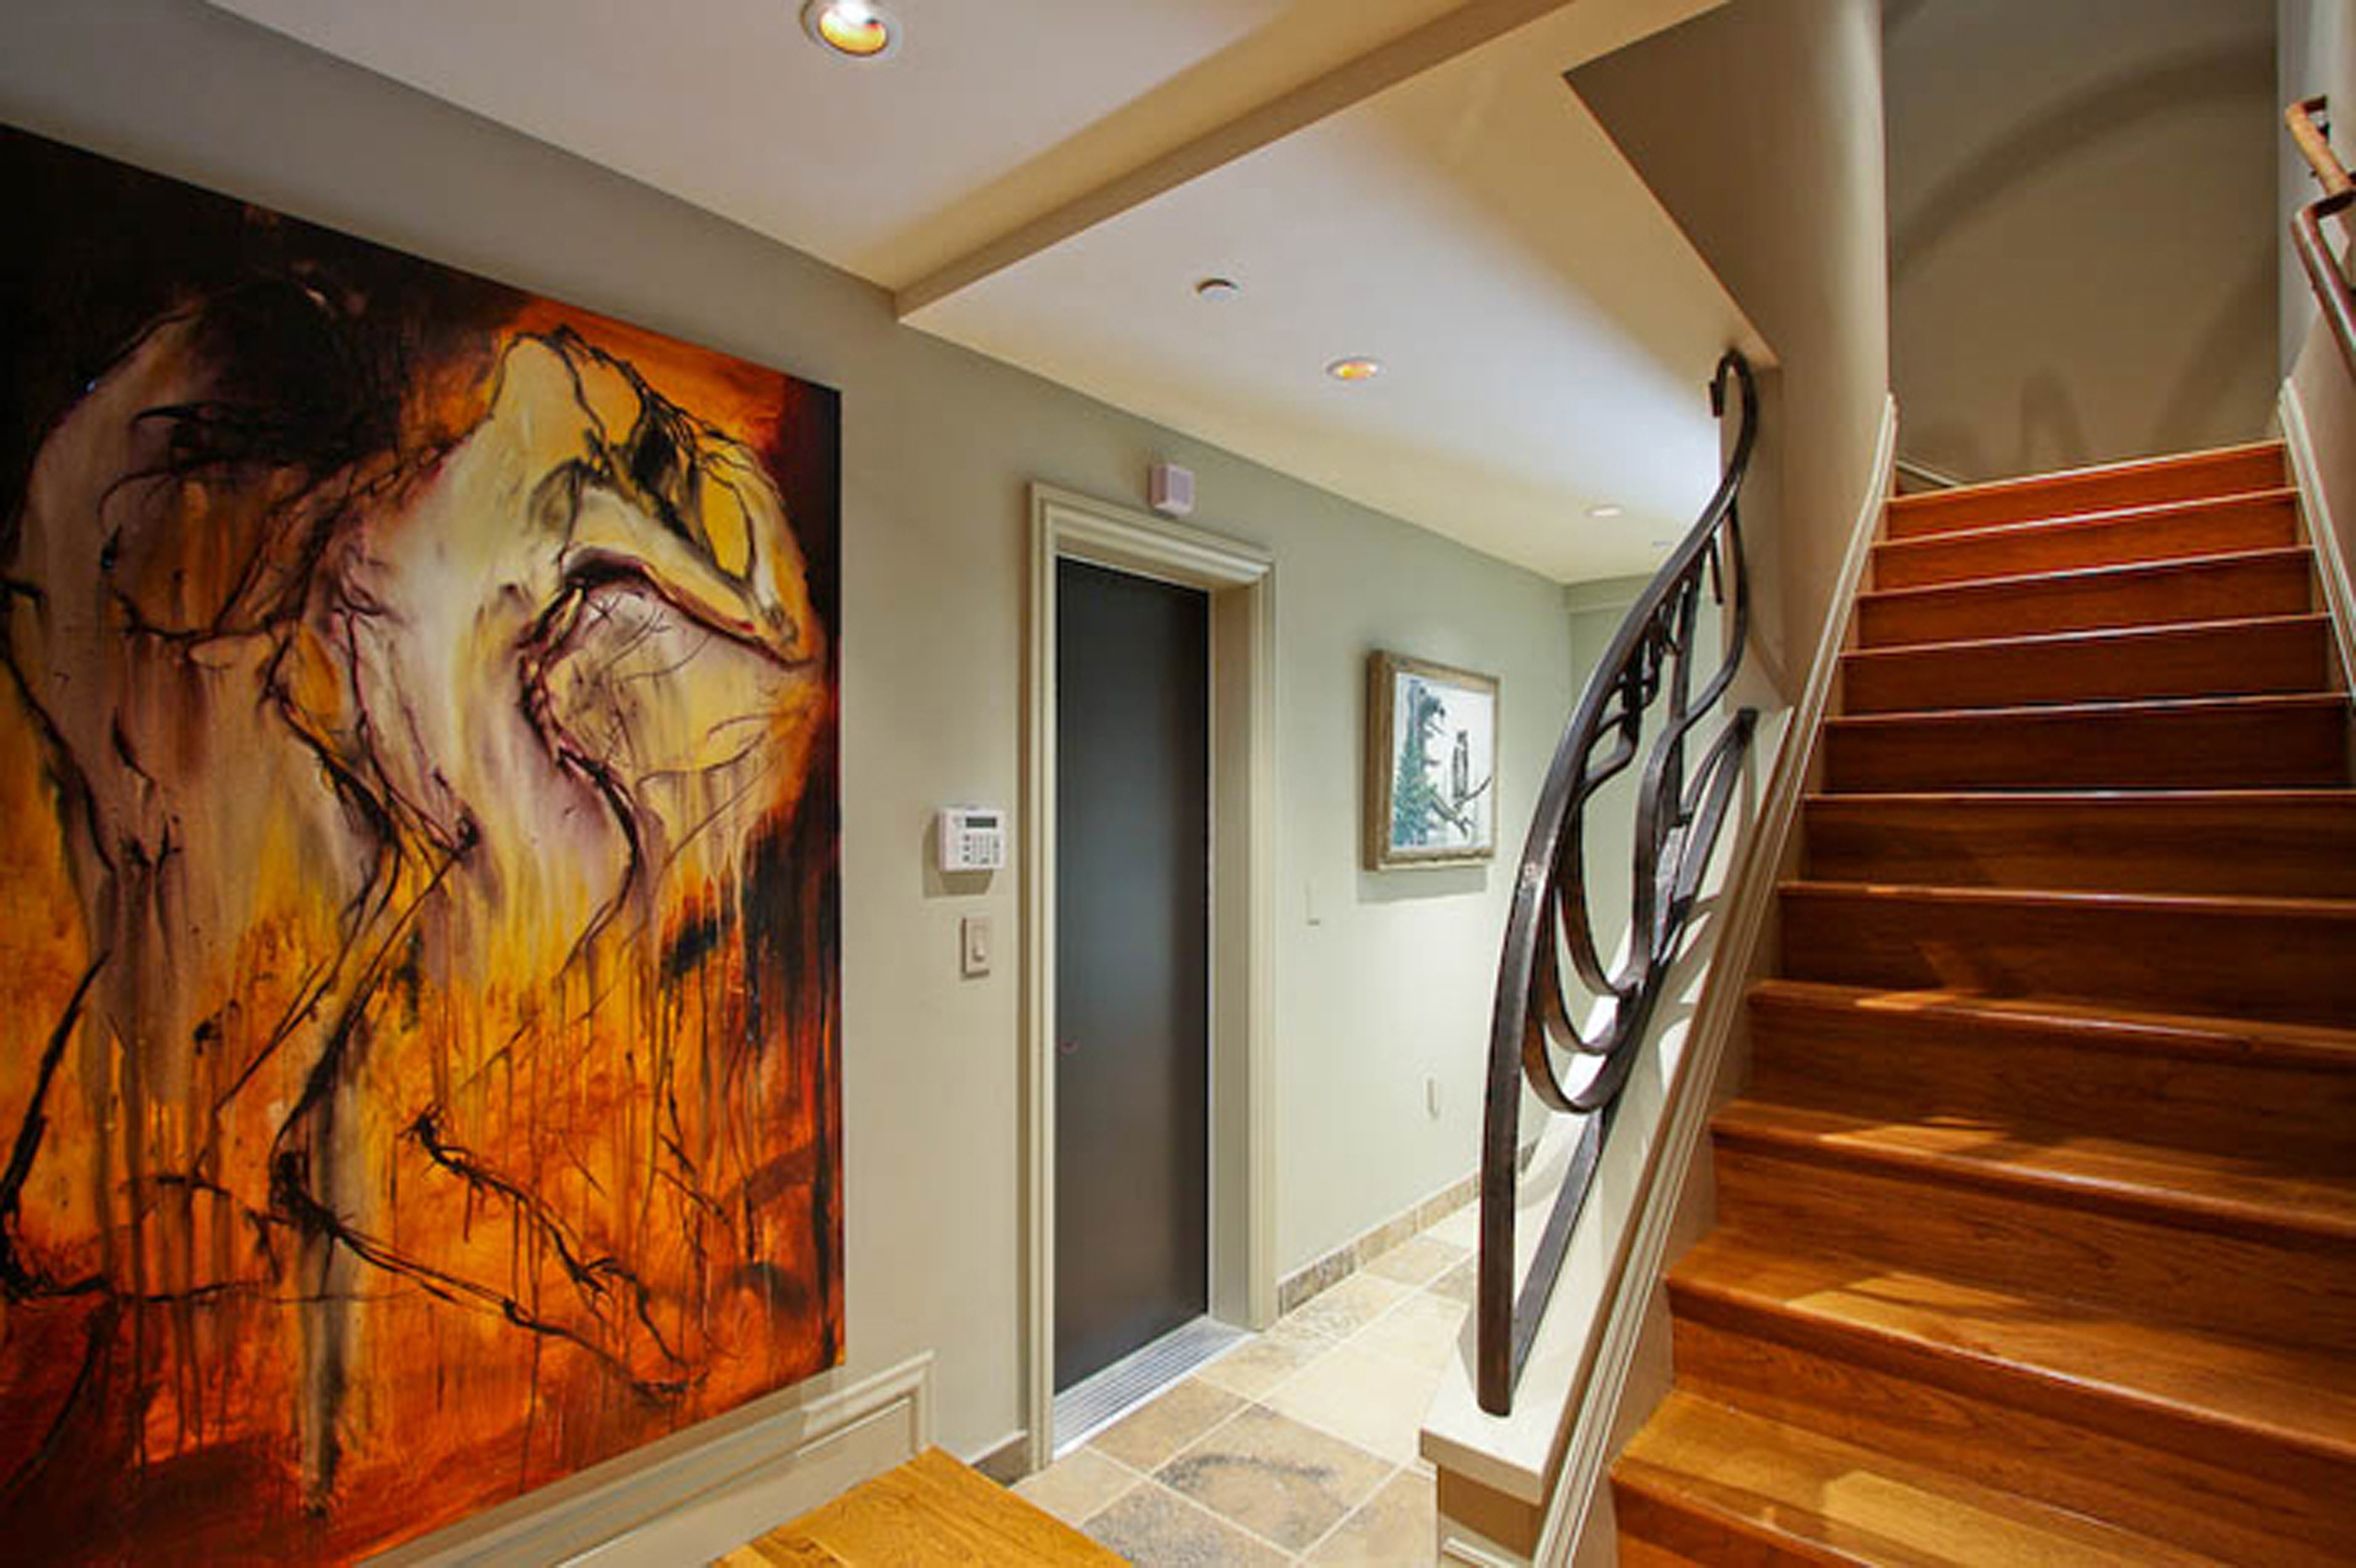 11-3715 22nd Stair to Apartment.jpg